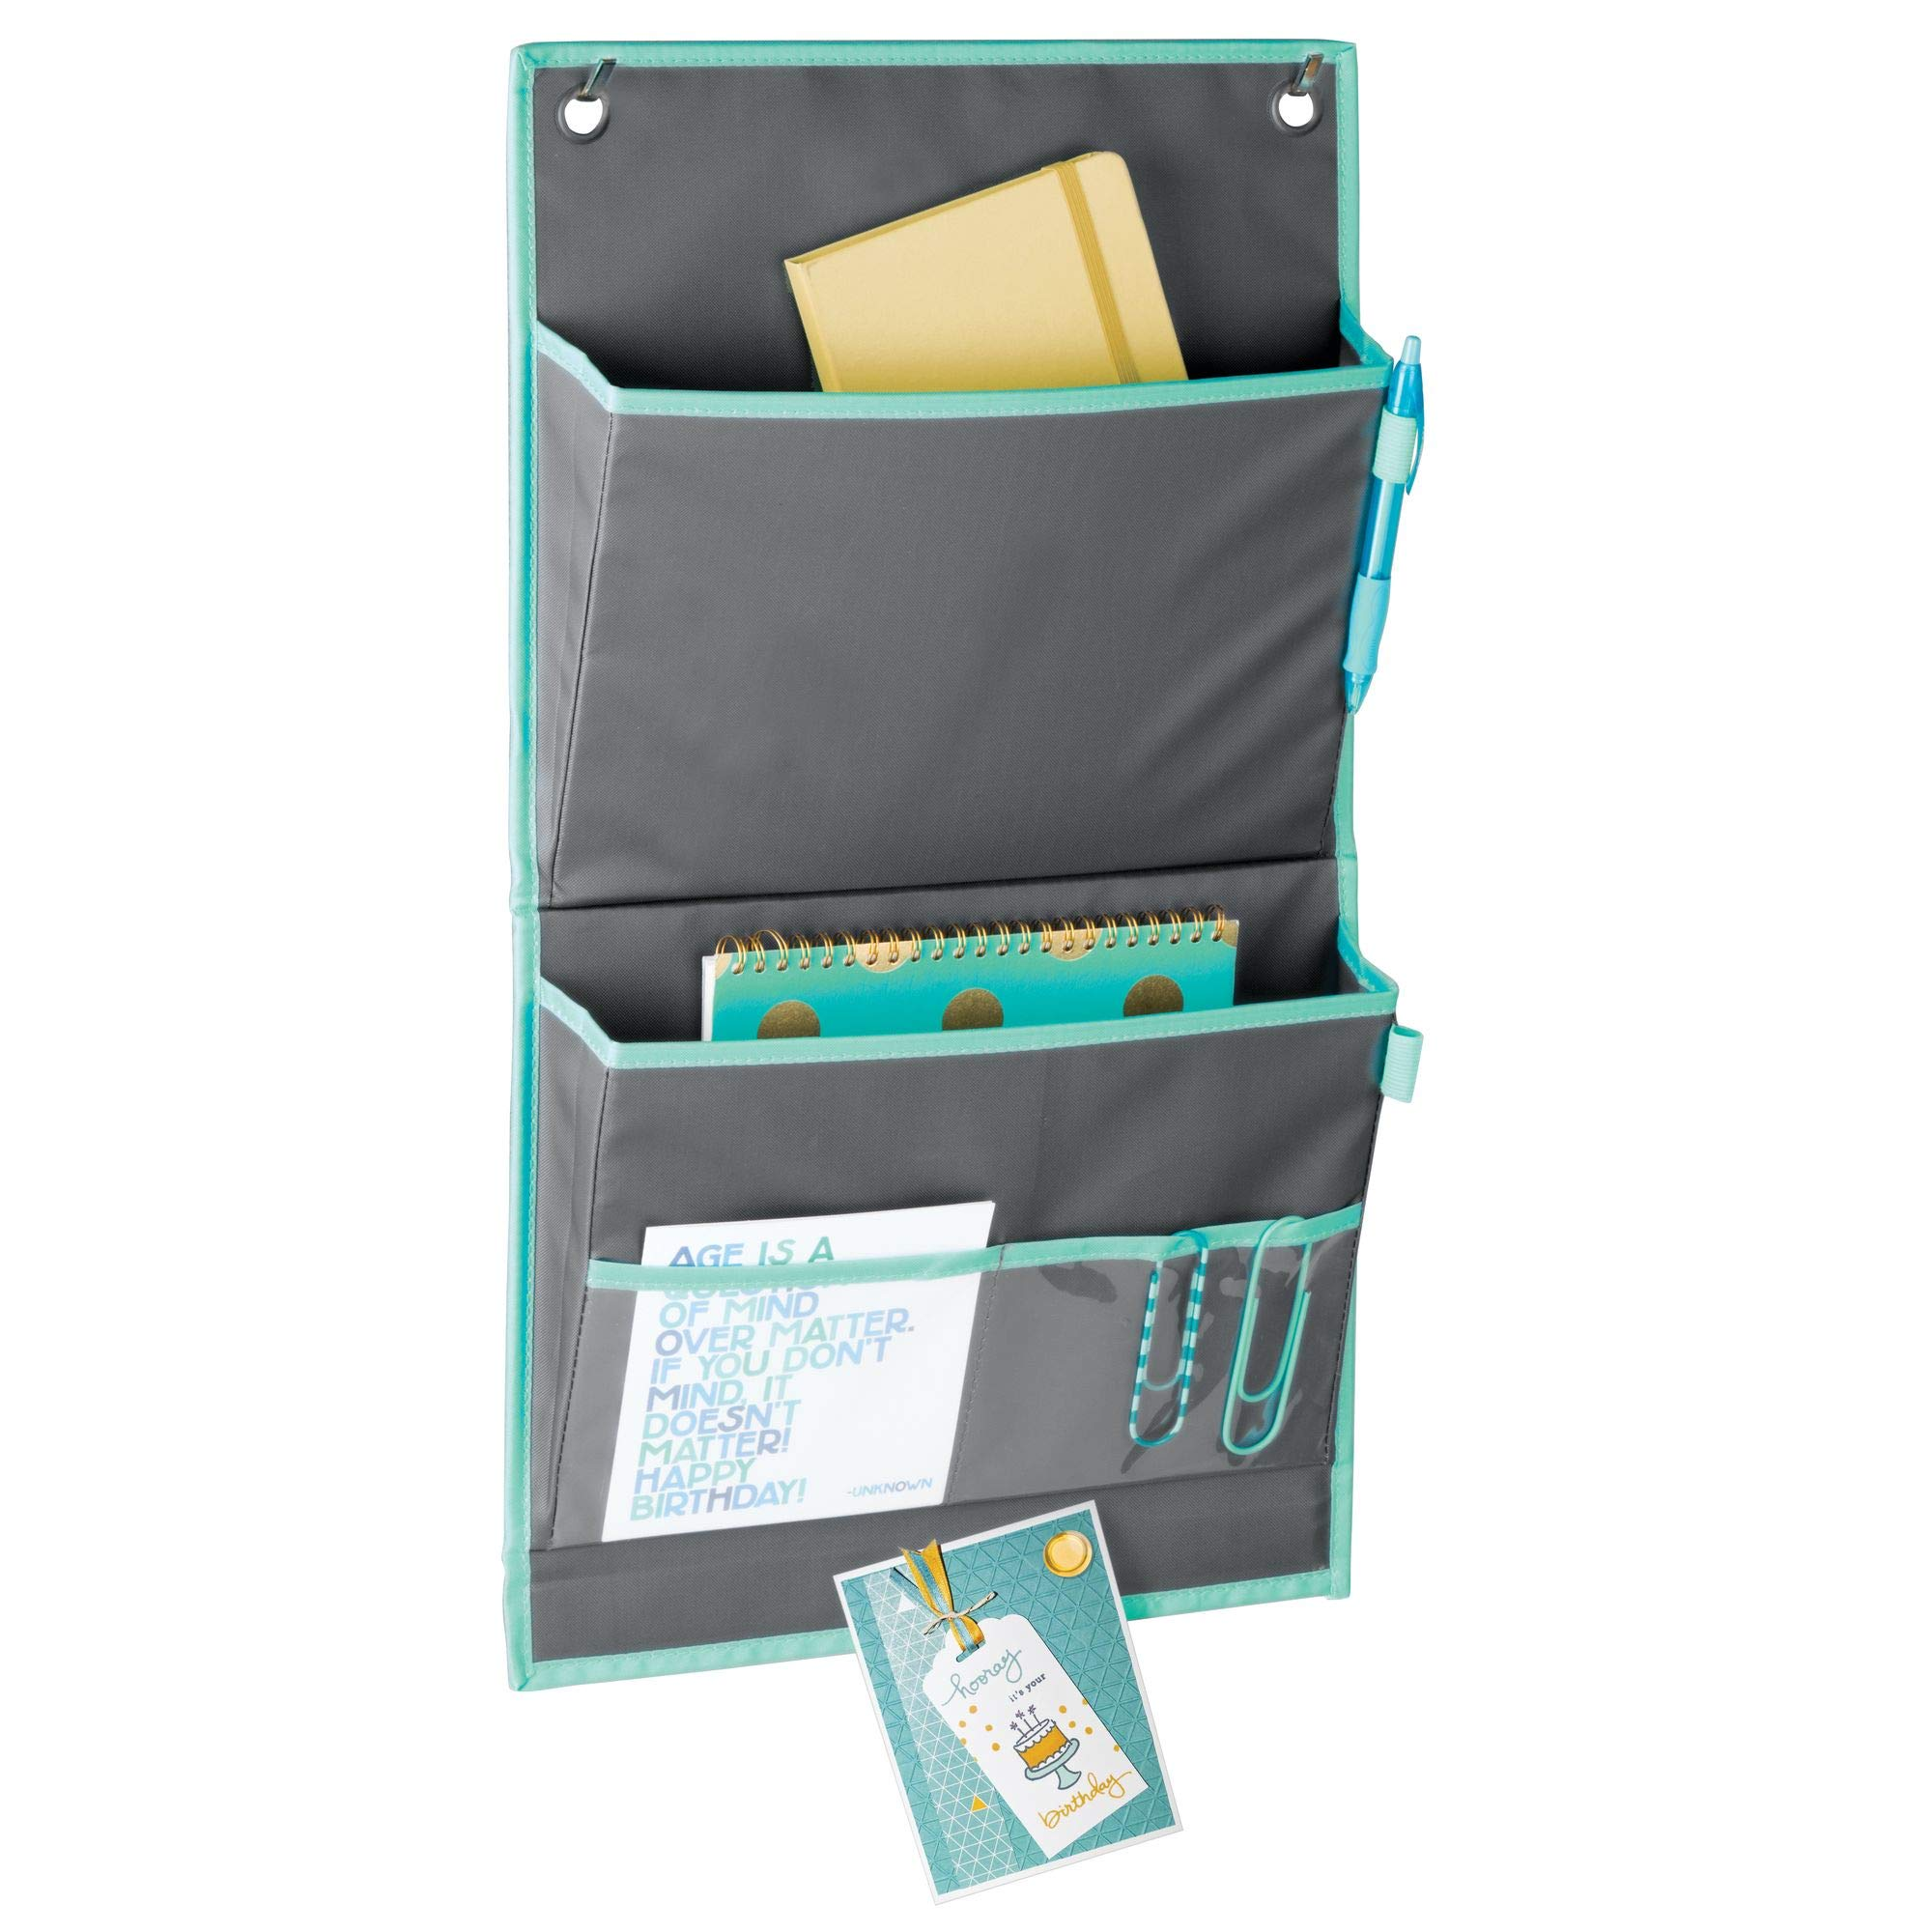 mDesign Soft Fabric Over The Door Hanging Storage Organizer - 4 Pockets in 2 Sizes and Magnetic Strip - Vertical Office Center for Home Office, Work Cubicle - Hooks Included, Gray/Teal Blue